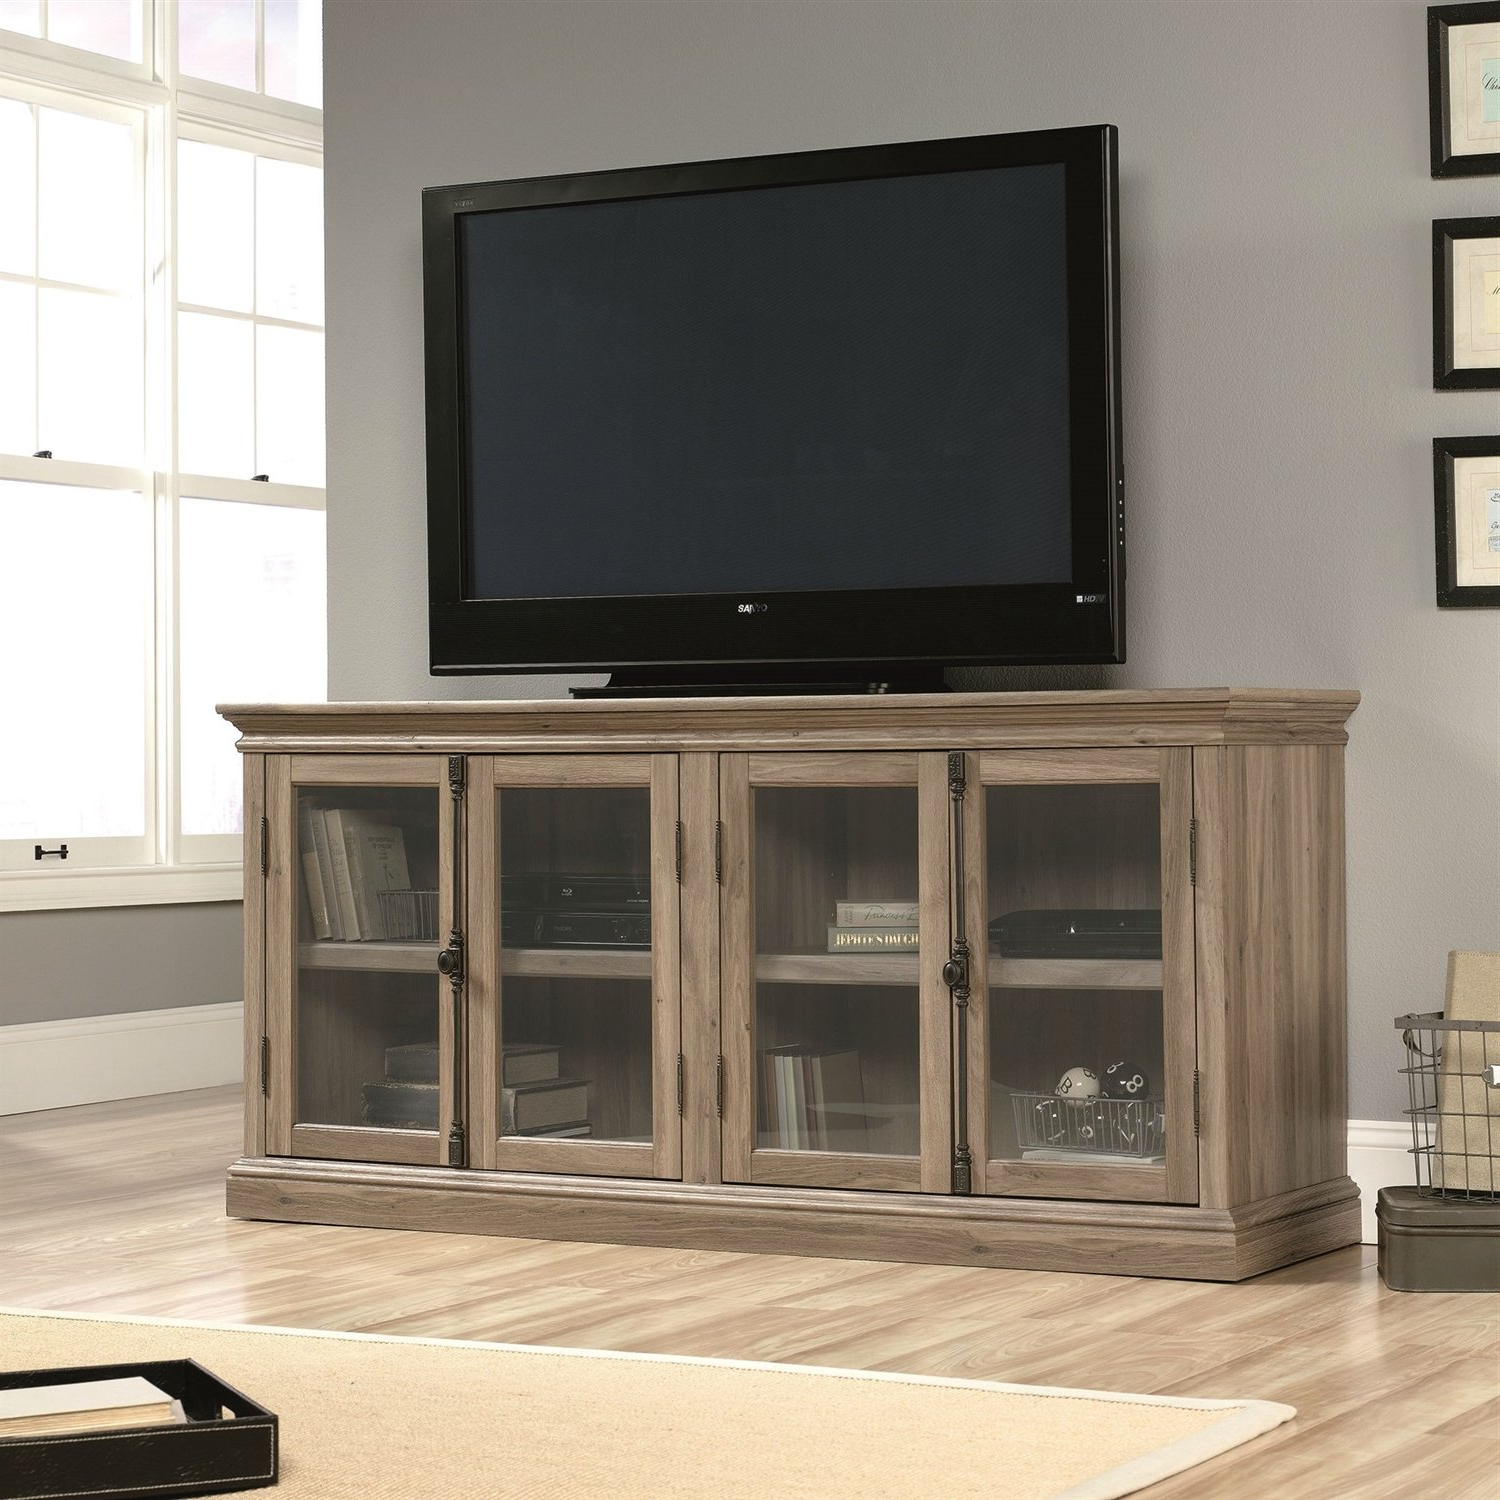 Wood Tv Stands With Glass Top With Regard To Famous This Salt Oak Wood Finish Tv Stand With Tempered Glass Doors – Fits (View 19 of 20)